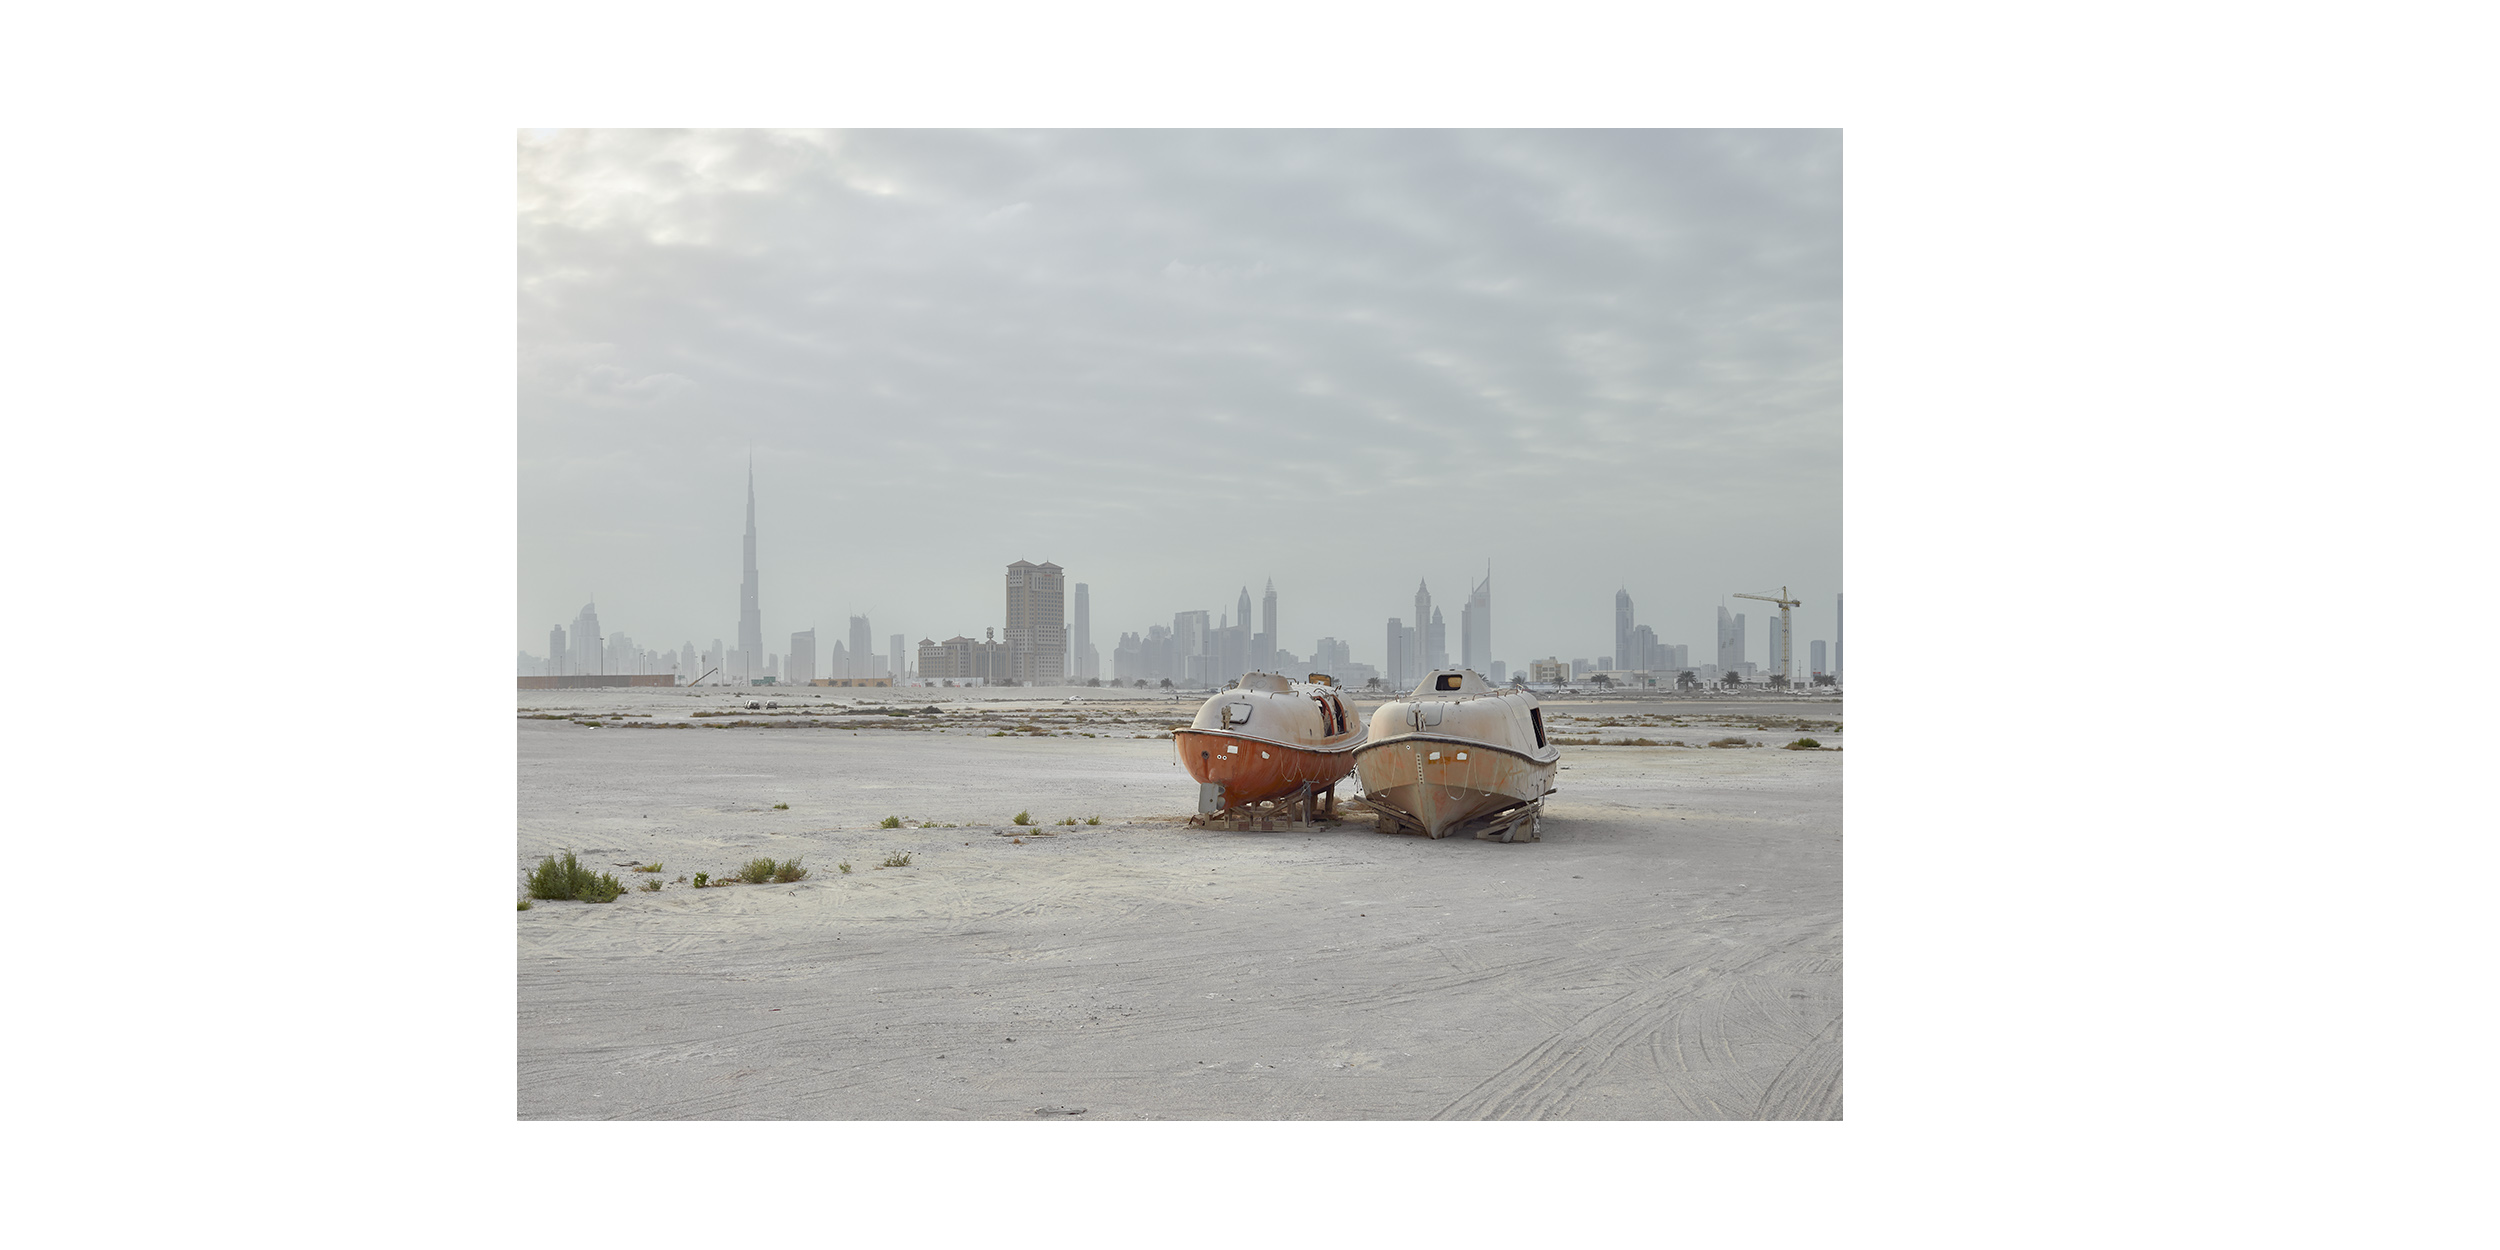 Lifeboats, Al Jaddaf, Dubai, from the series 'The Edge'